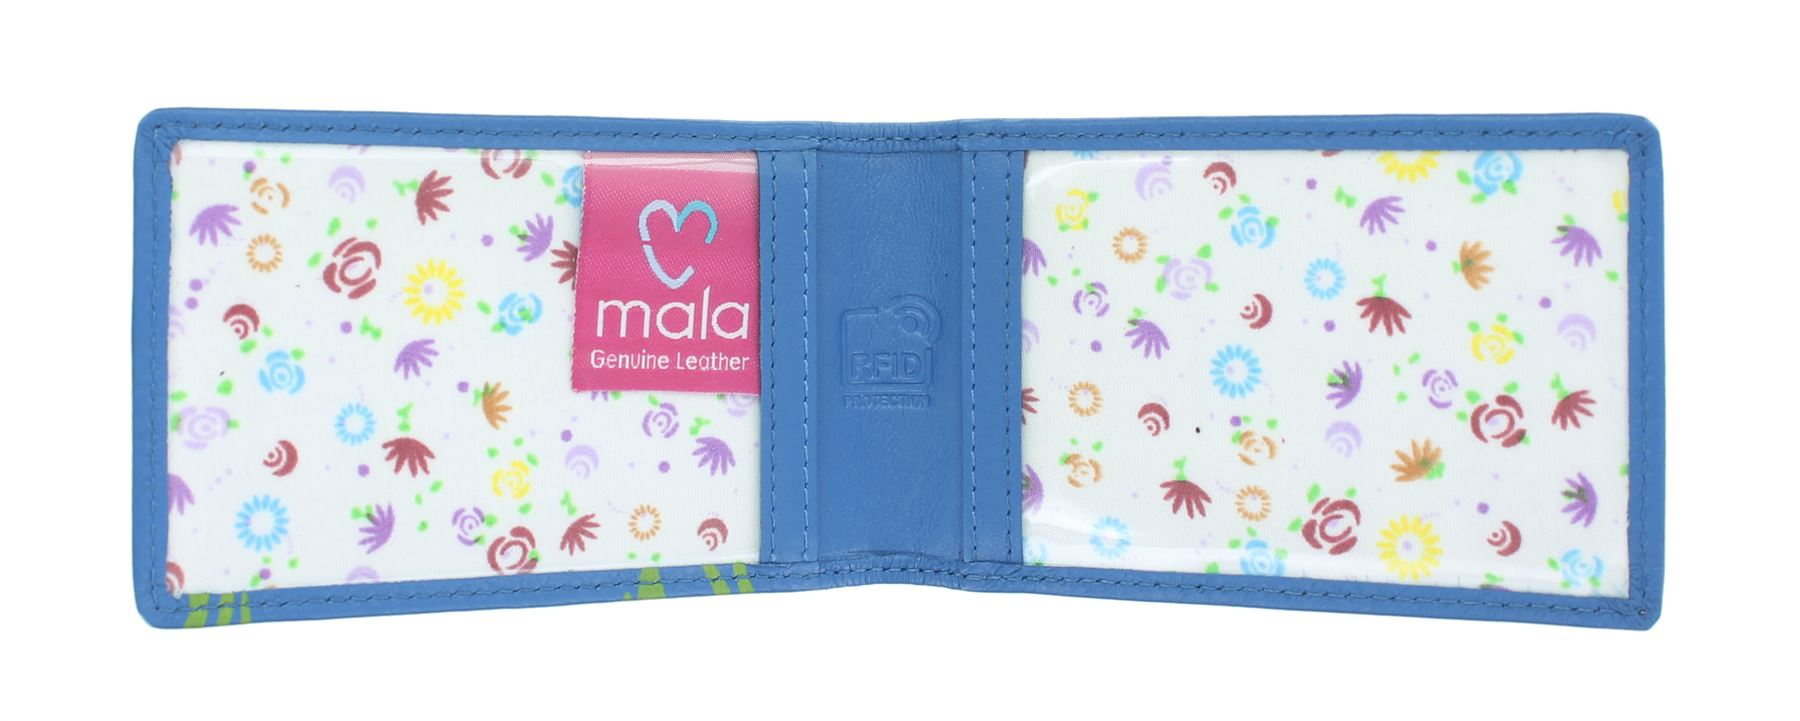 Mala Leather Bella Collection Leather Credit Card Holder RFID 641_33